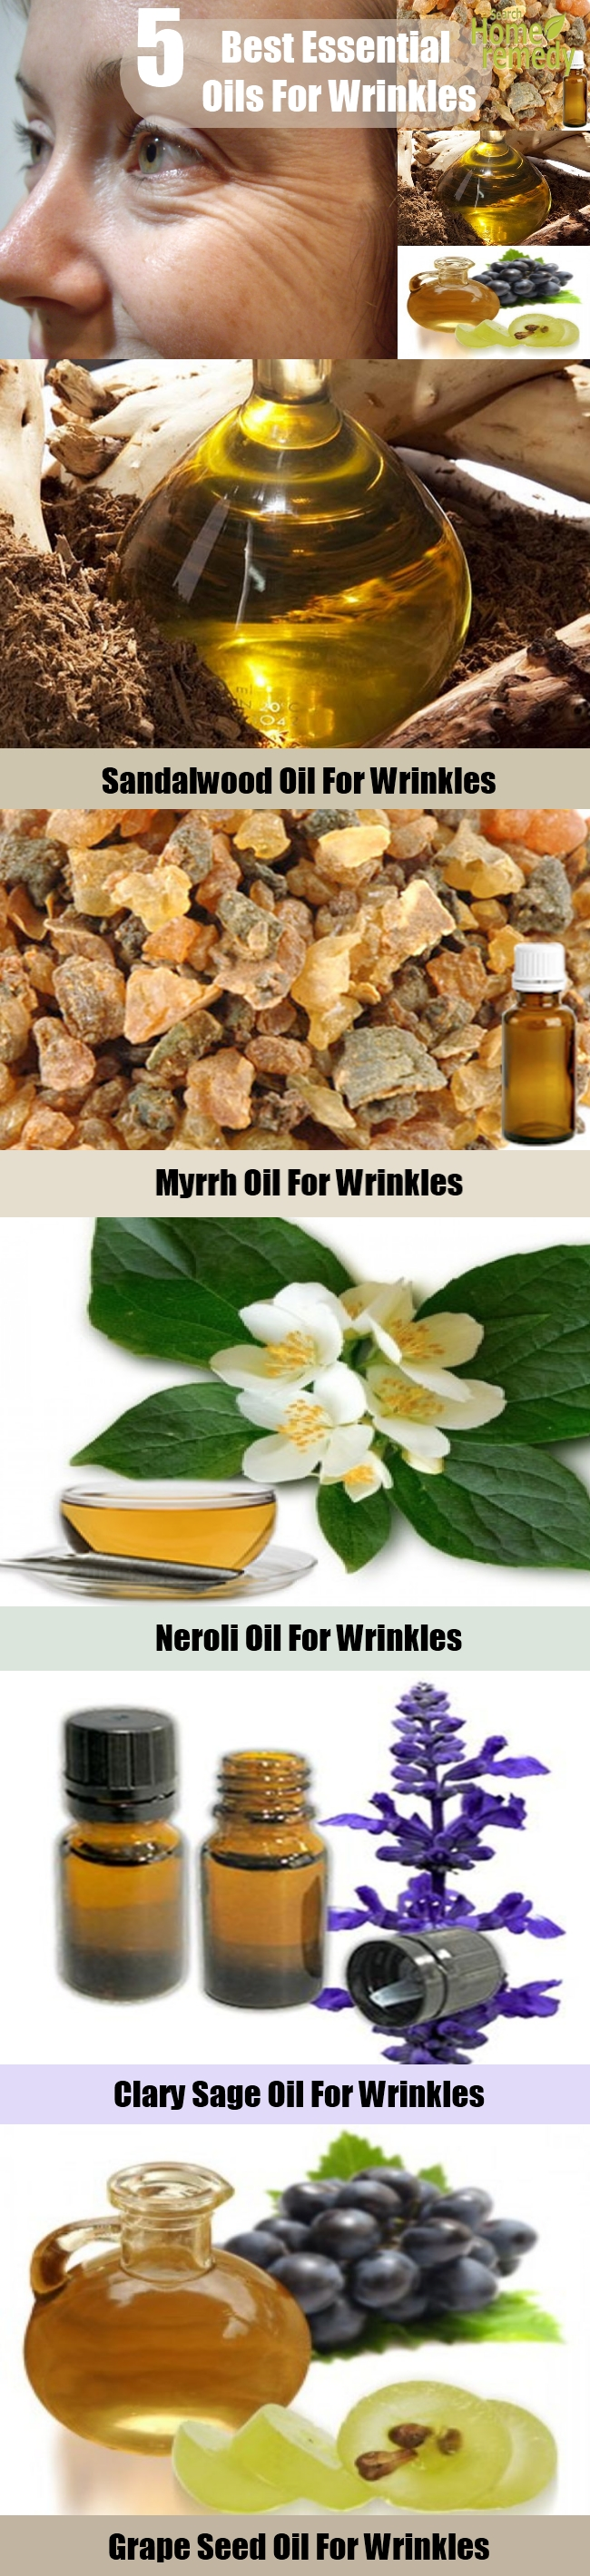 5 Best Essential Oils For Wrinkles